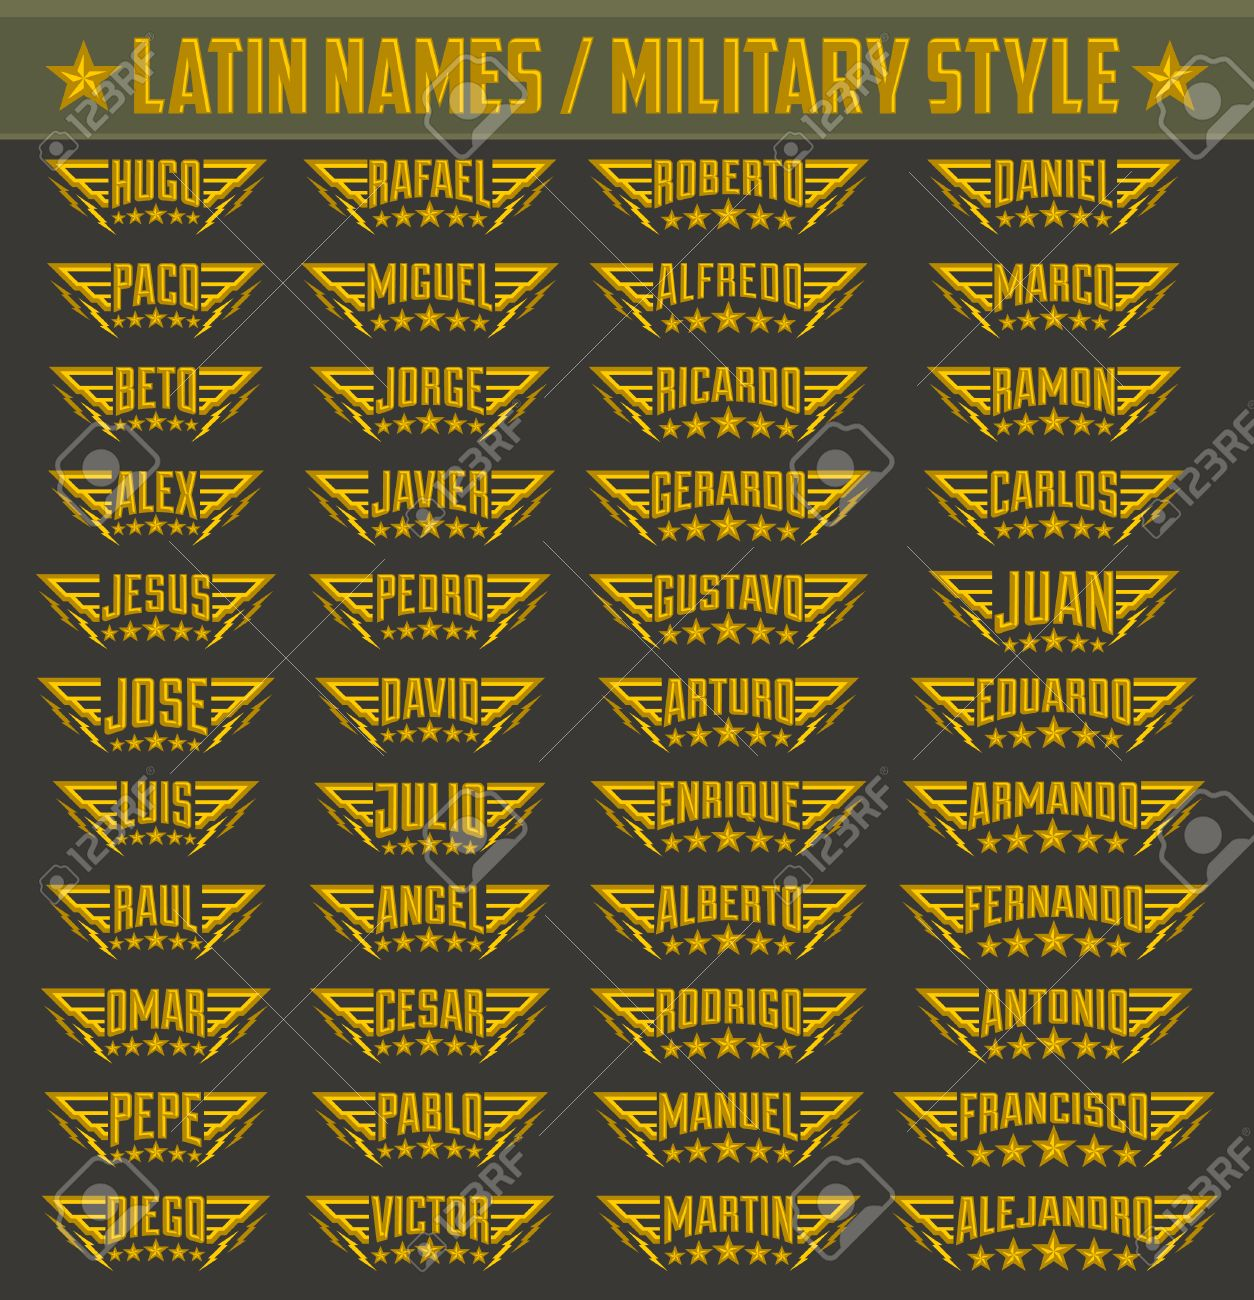 Hispanic popular names, Set of military style badges with personal